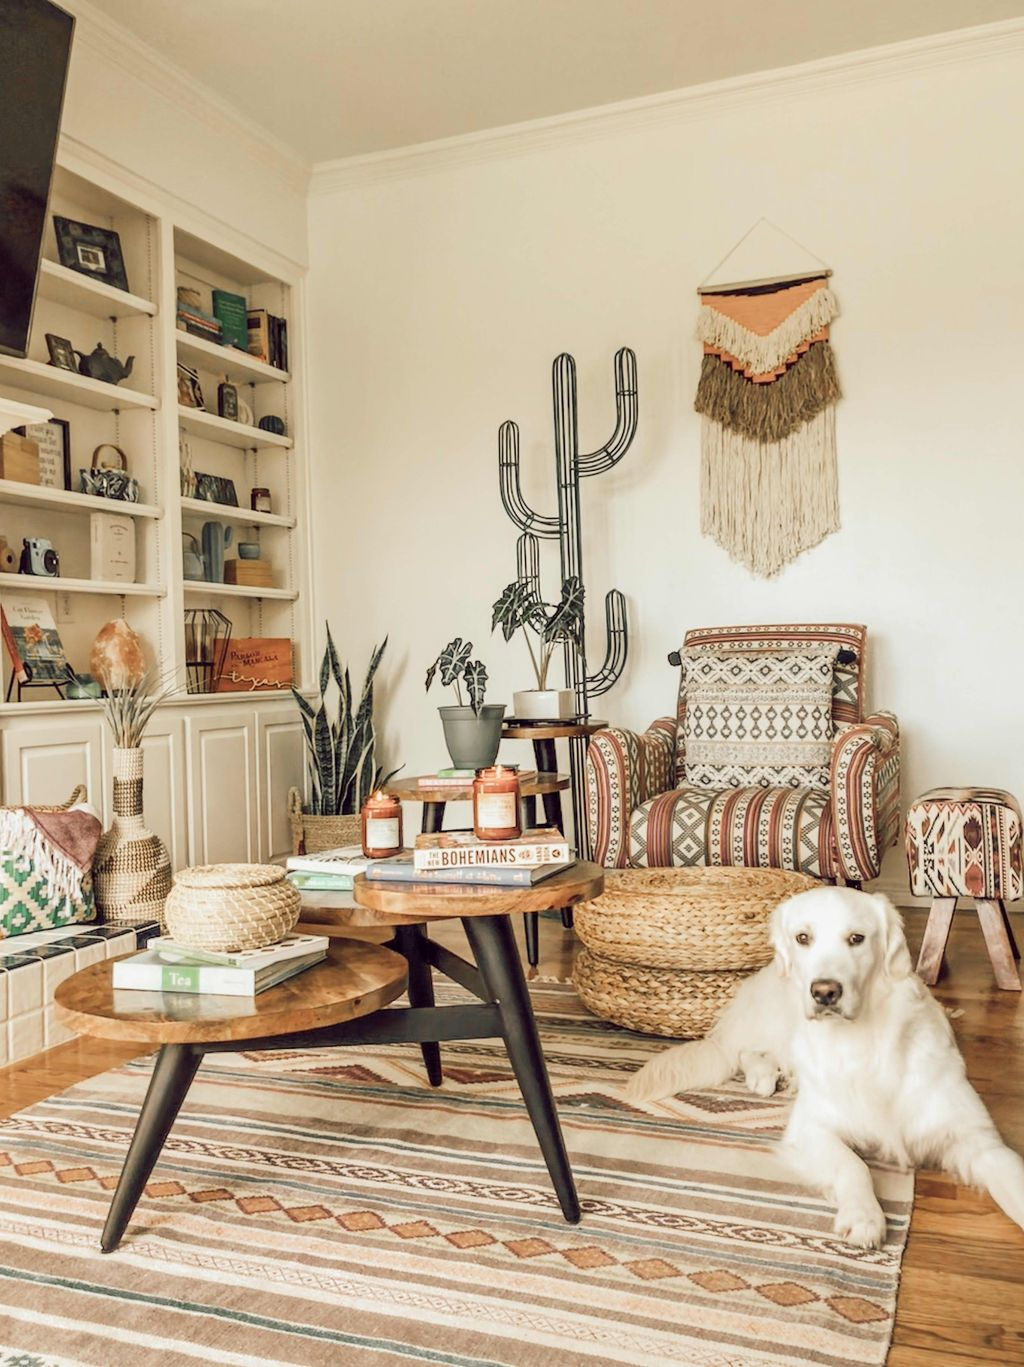 The Best Rustic Bohemian Living Room Decor Ideas 16